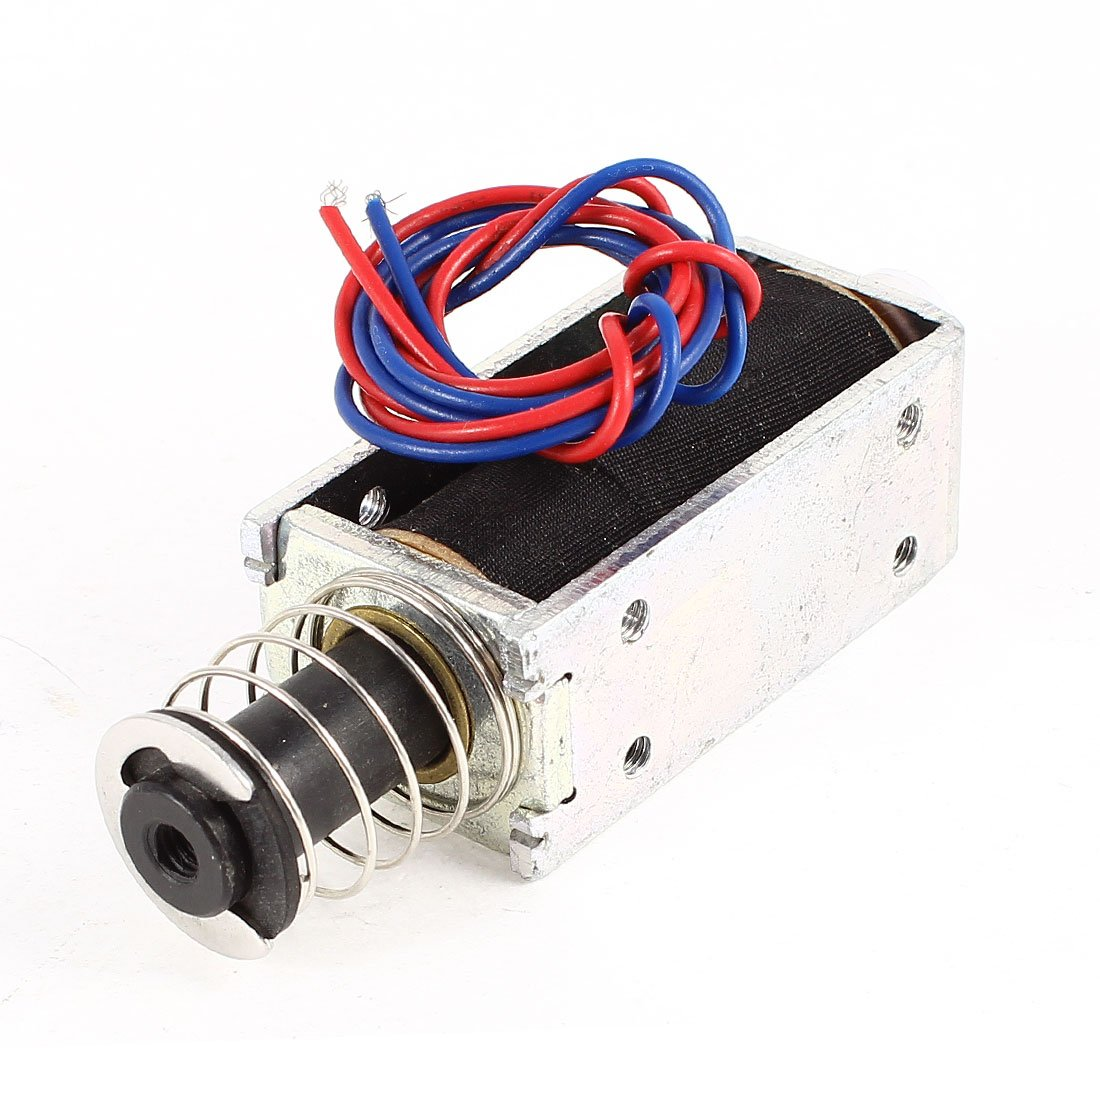 Uxcell a14052300ux1099 DC 24V 0.3A 20 mm 3.5 lb. Push Pull Type Tubular Solenoid, Electromagnet